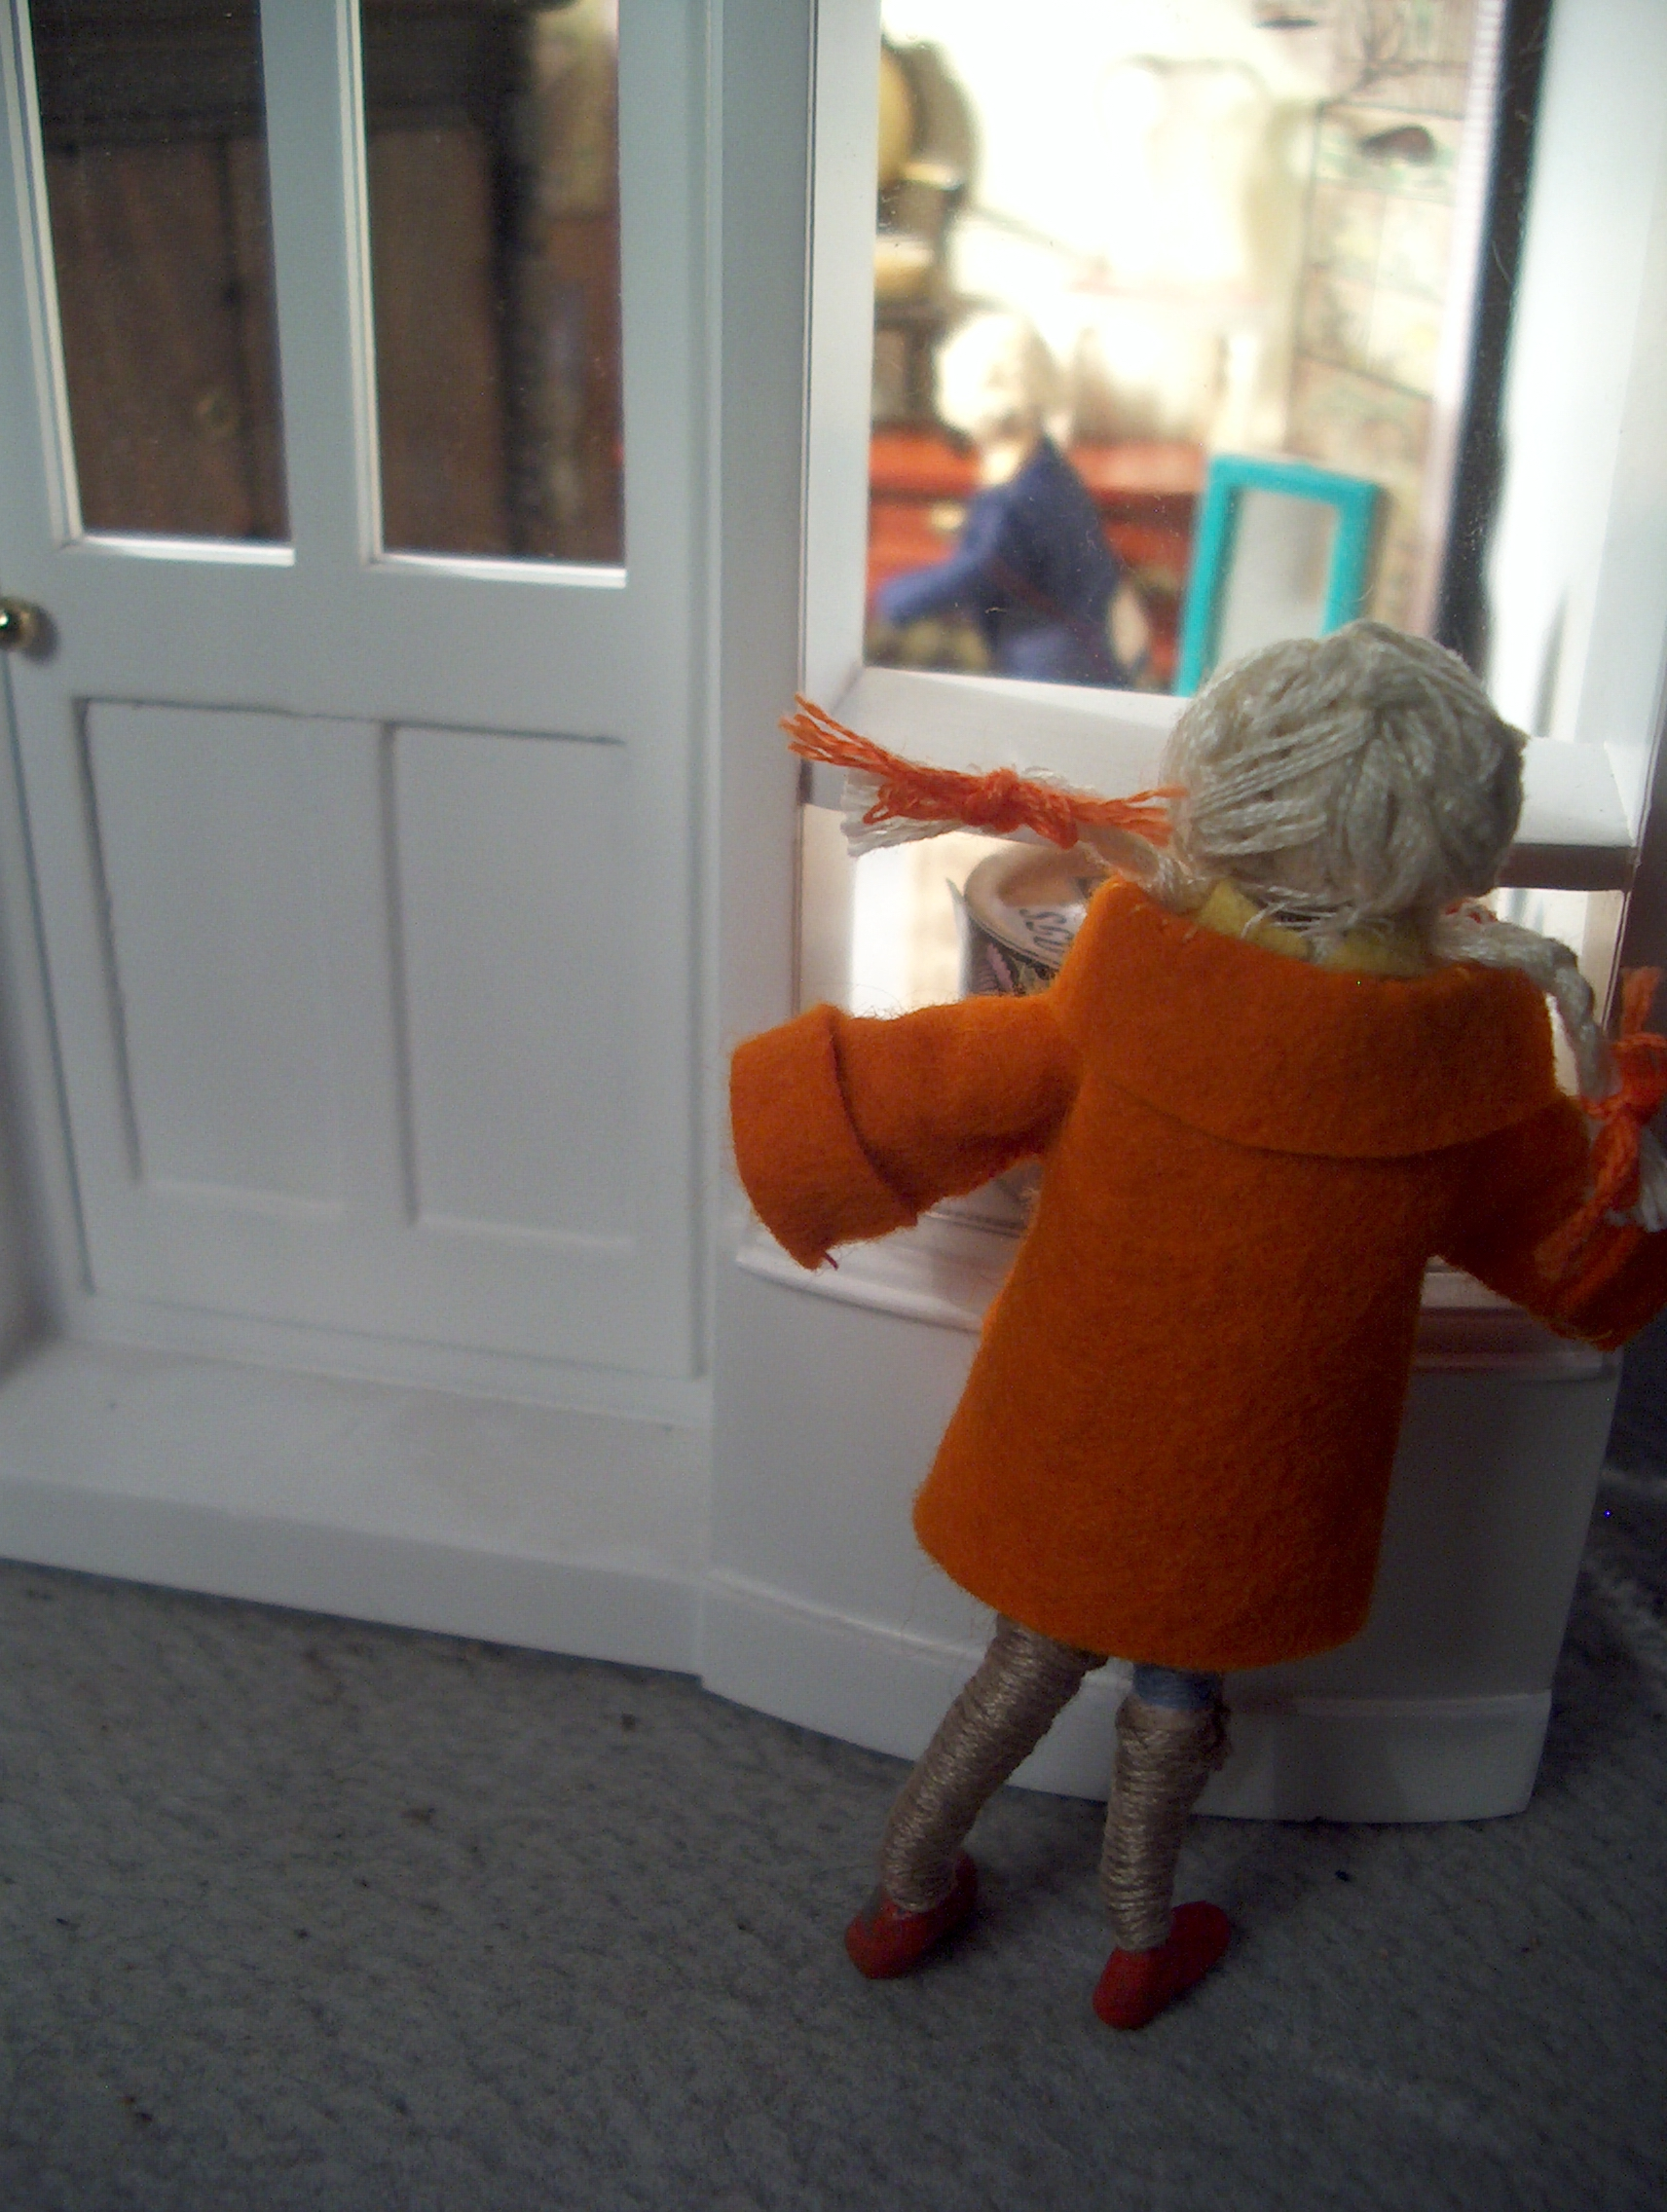 Exploring the village the next day, and seeing a somewhat tatty second hand shop, she pressed her nose ro the window and was most disconcerted to see a familiar face inside the shop.